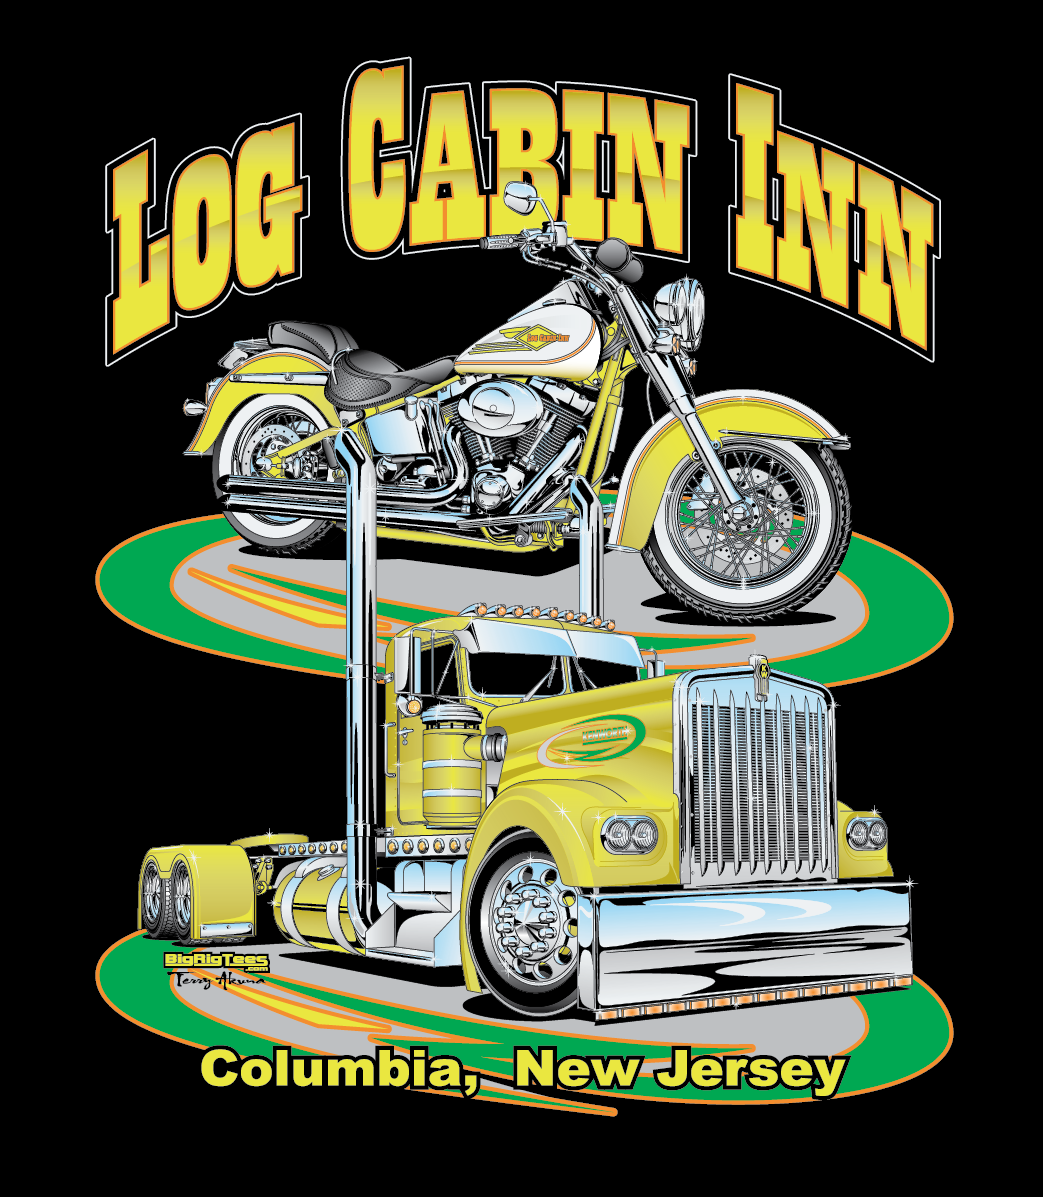 Trucker Quotes Hillwick Truckinglog Cabin Inn  Terry Akuna's Trucking Industry